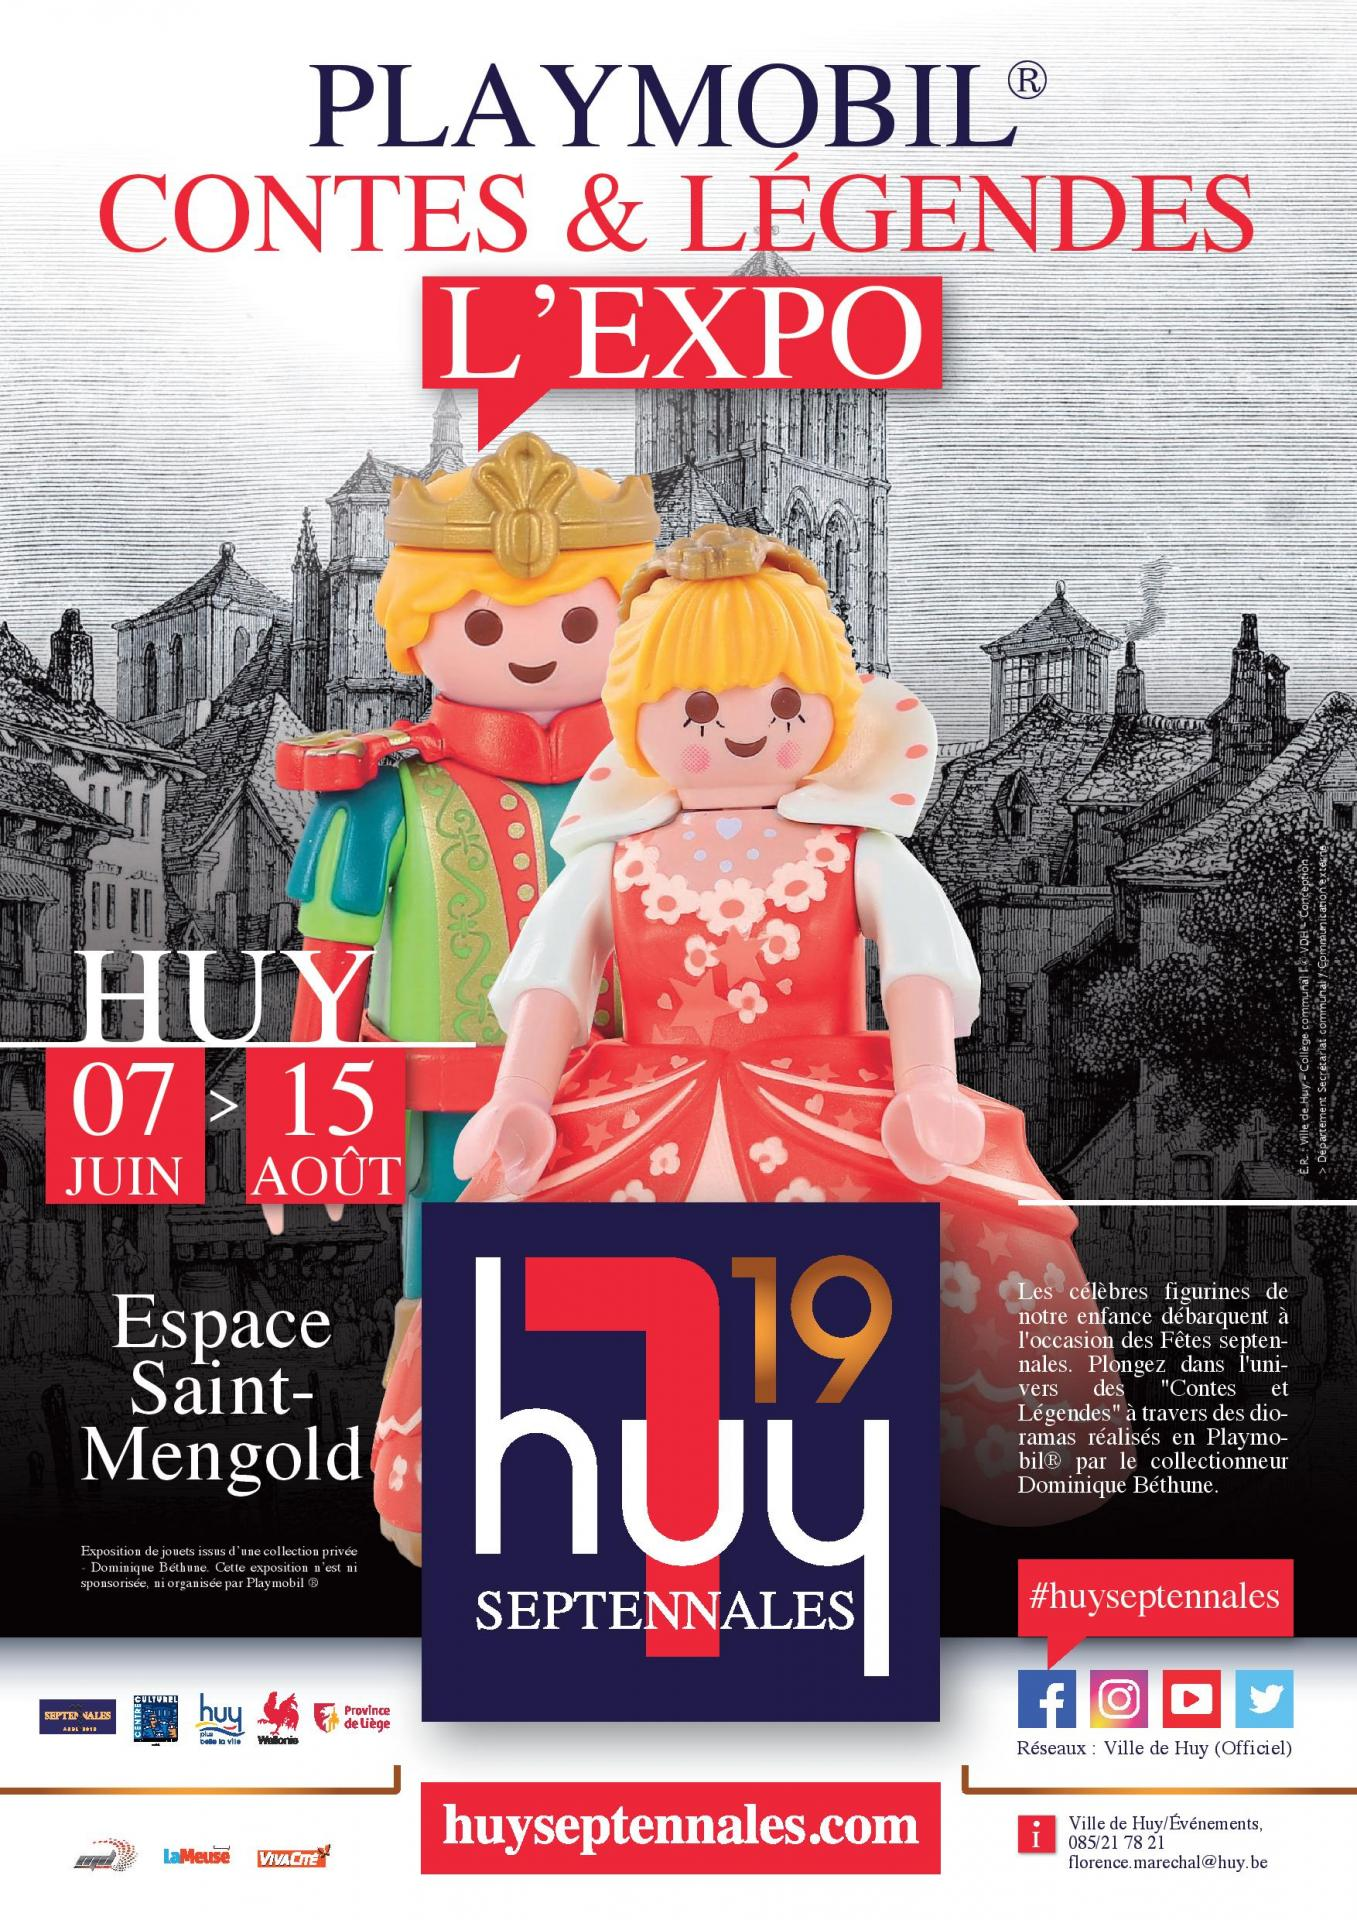 Septennales 2019 event expo playmobil septennales huy affiche a3